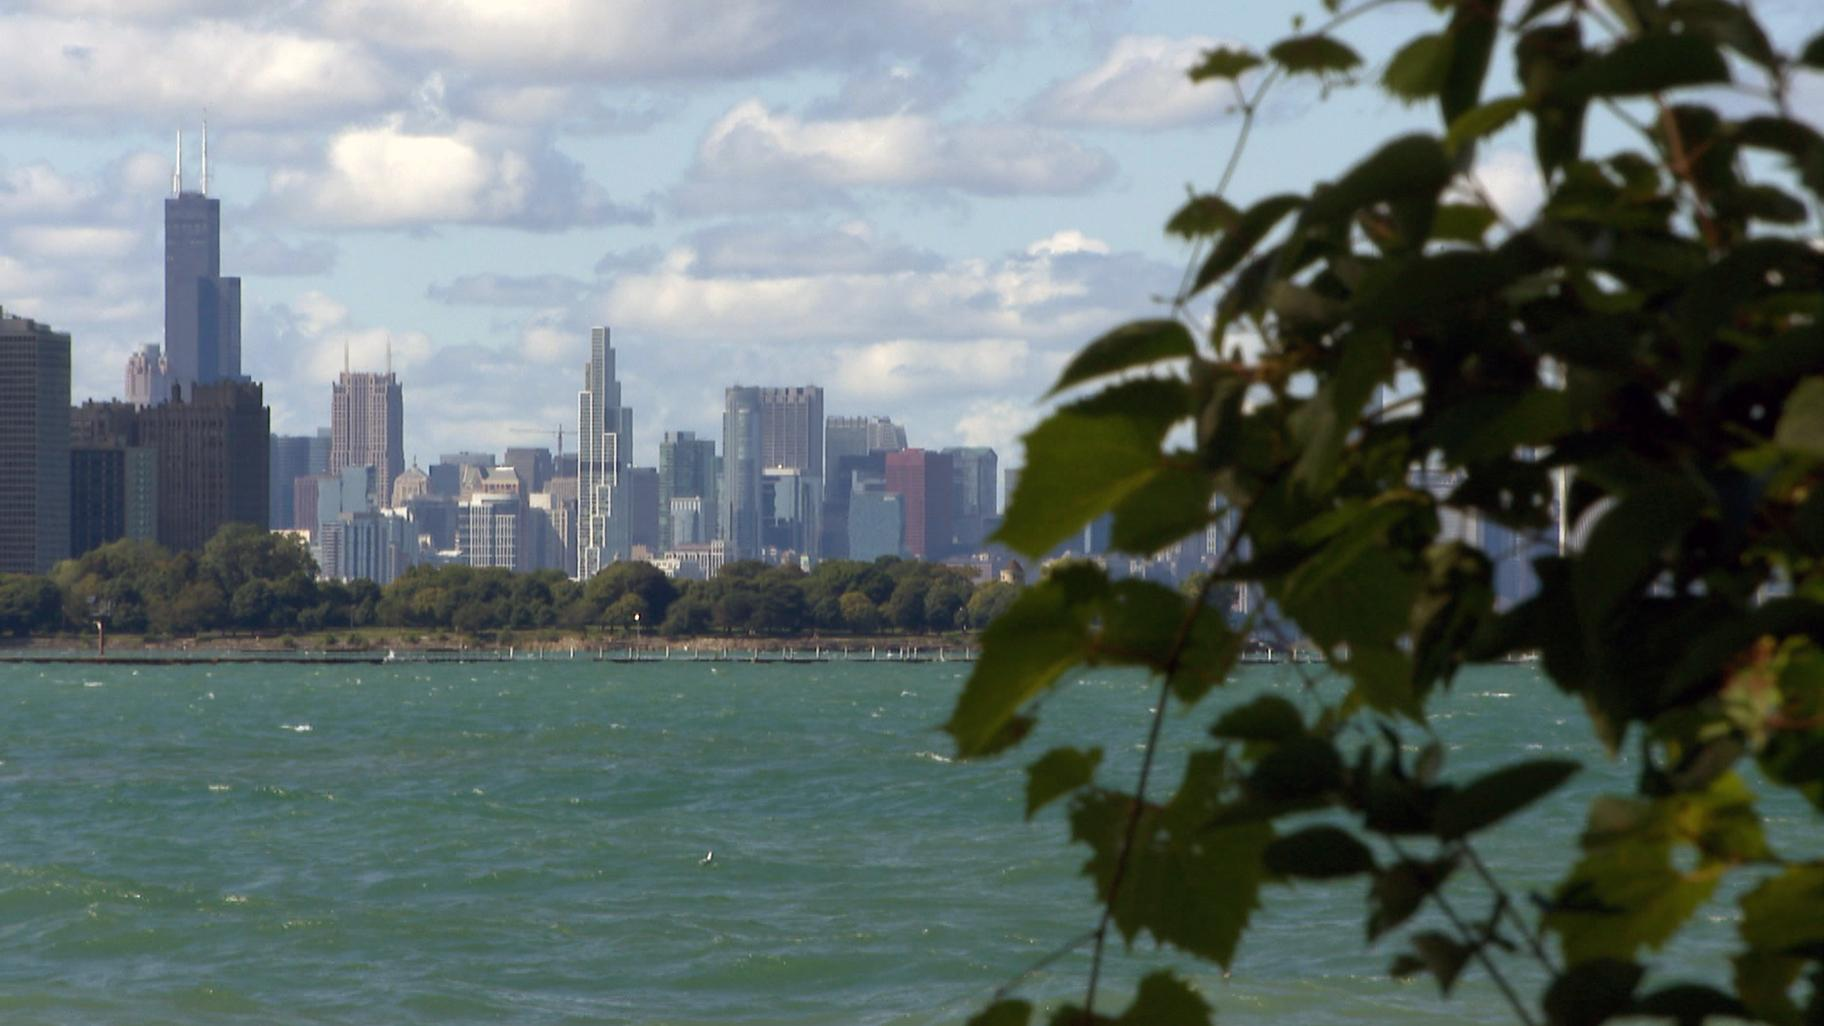 A view of Chicago's skyline from the South Shore Nature Sanctuary.